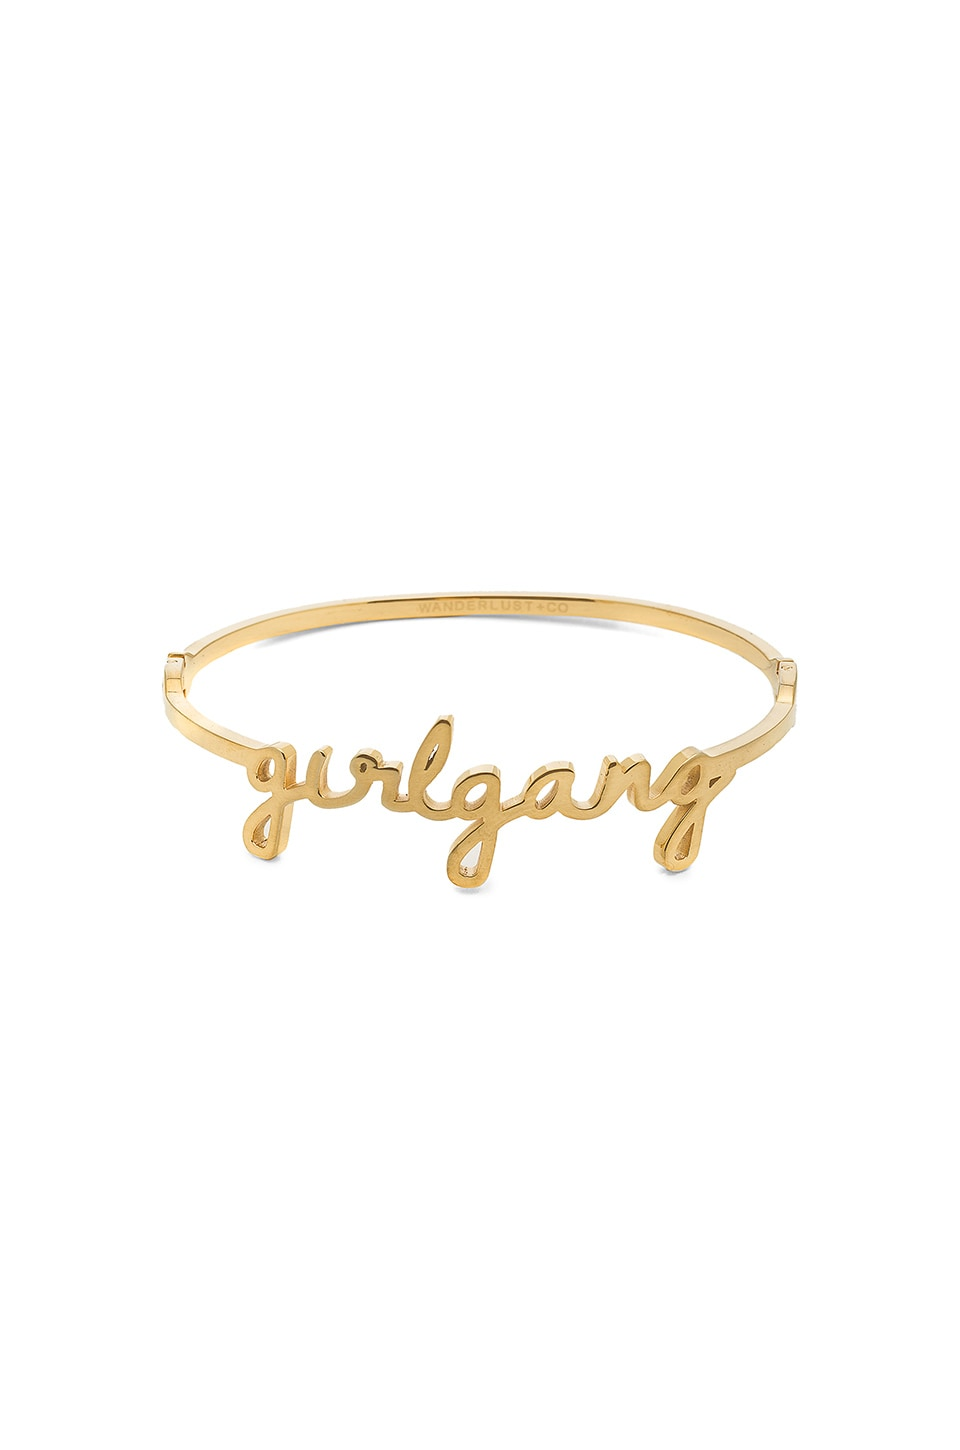 Wanderlust + Co Girl Gang Bangle in Gold